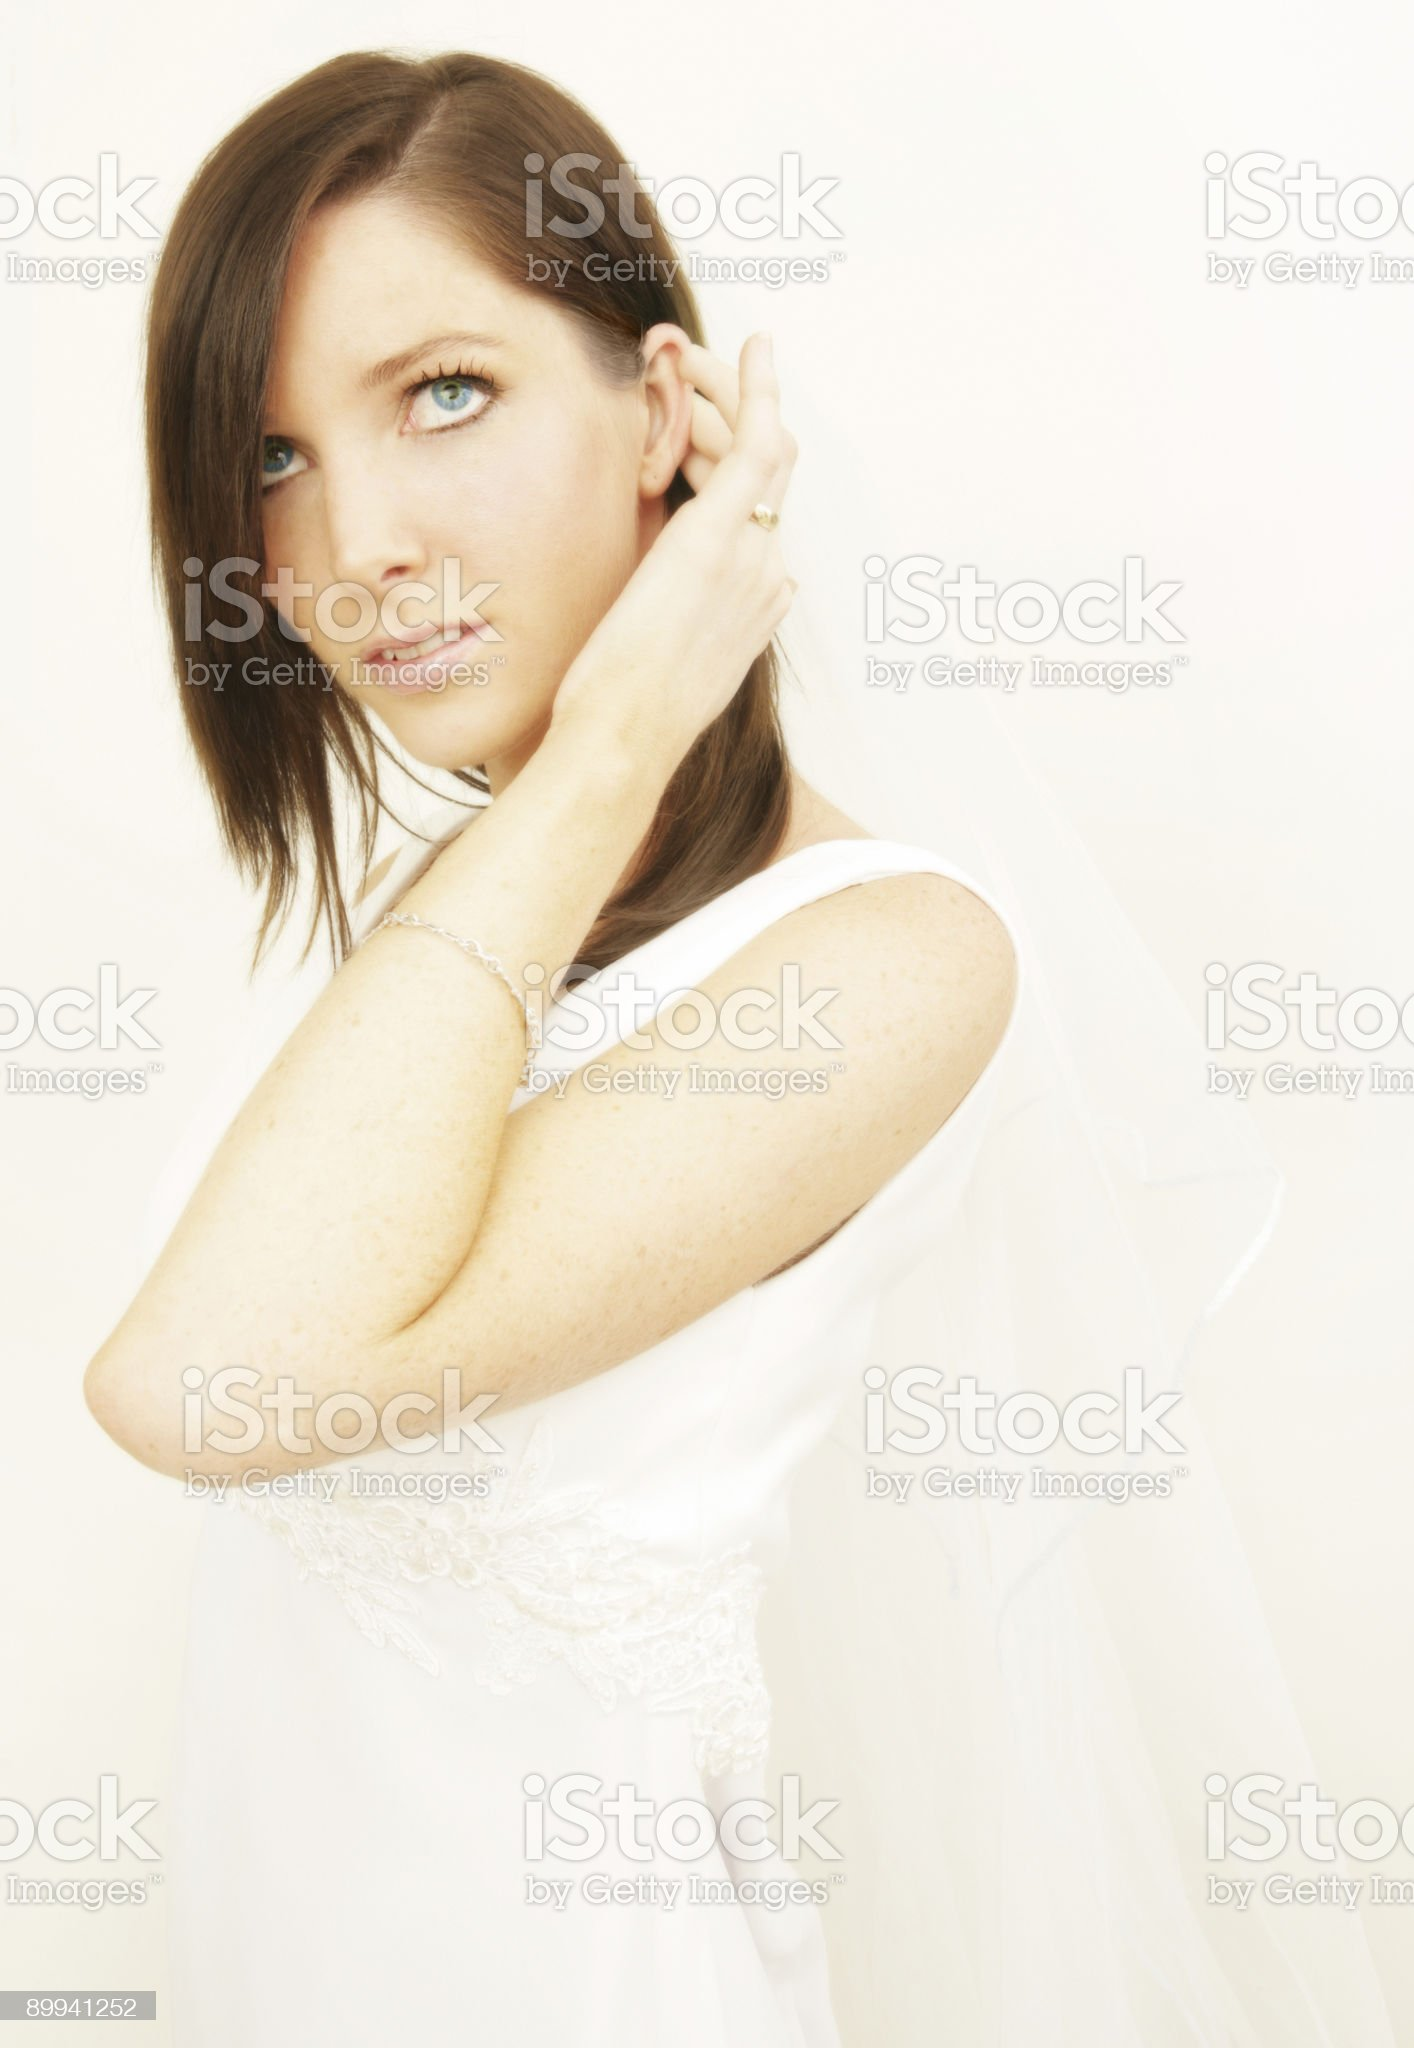 Bridal Hope royalty-free stock photo